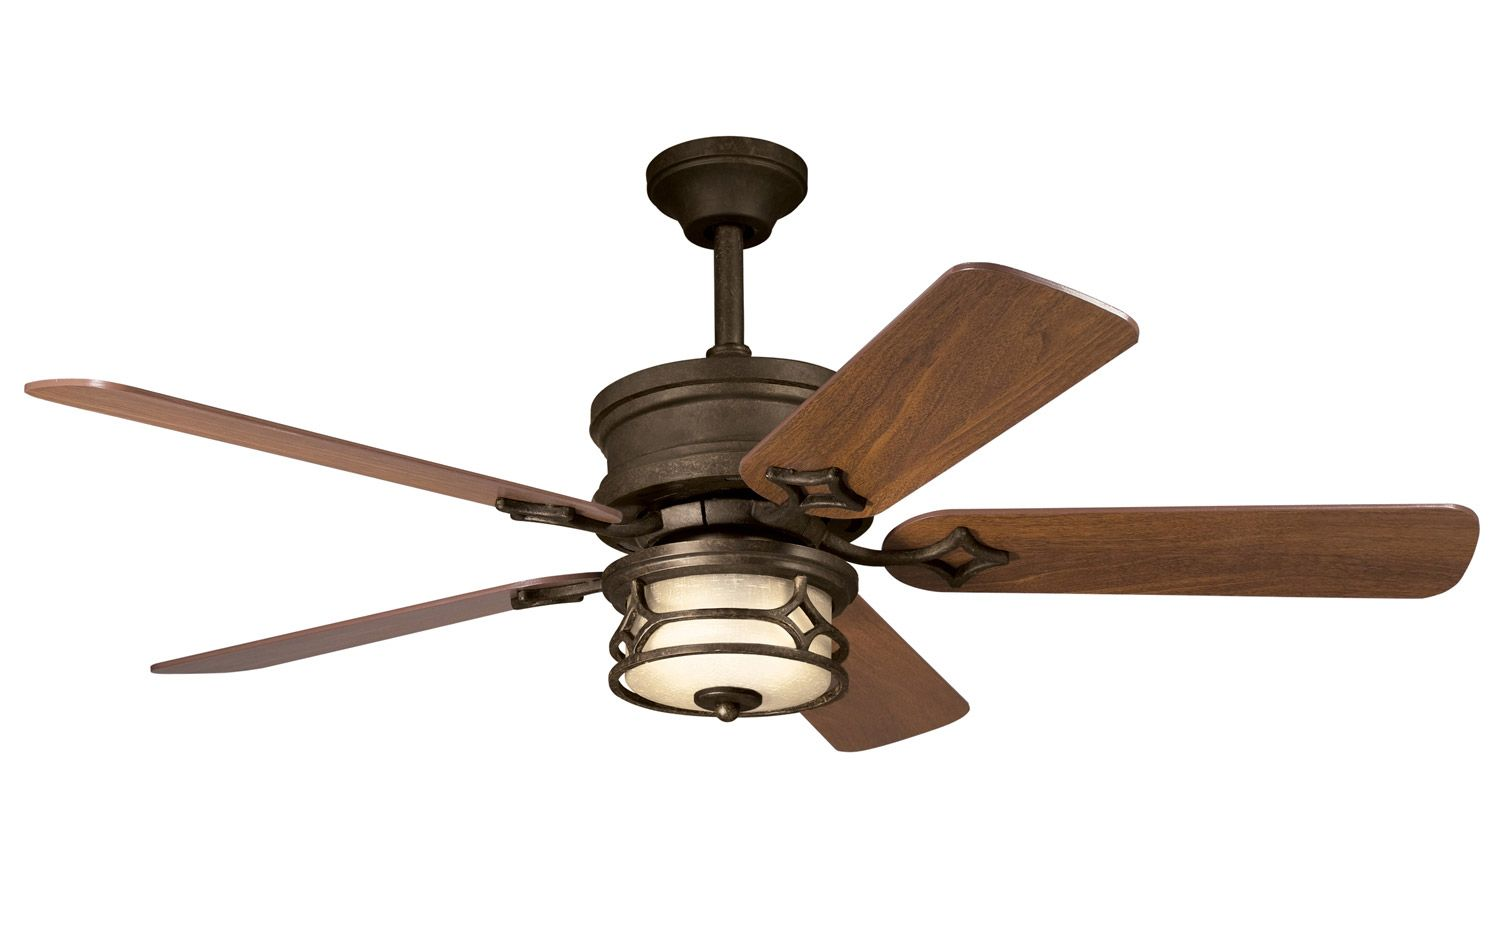 Tiffany style ceiling fans craftsmanmission chicago ceiling fan tiffany style ceiling fans craftsmanmission chicago ceiling fan kichler 300001agz aloadofball Images